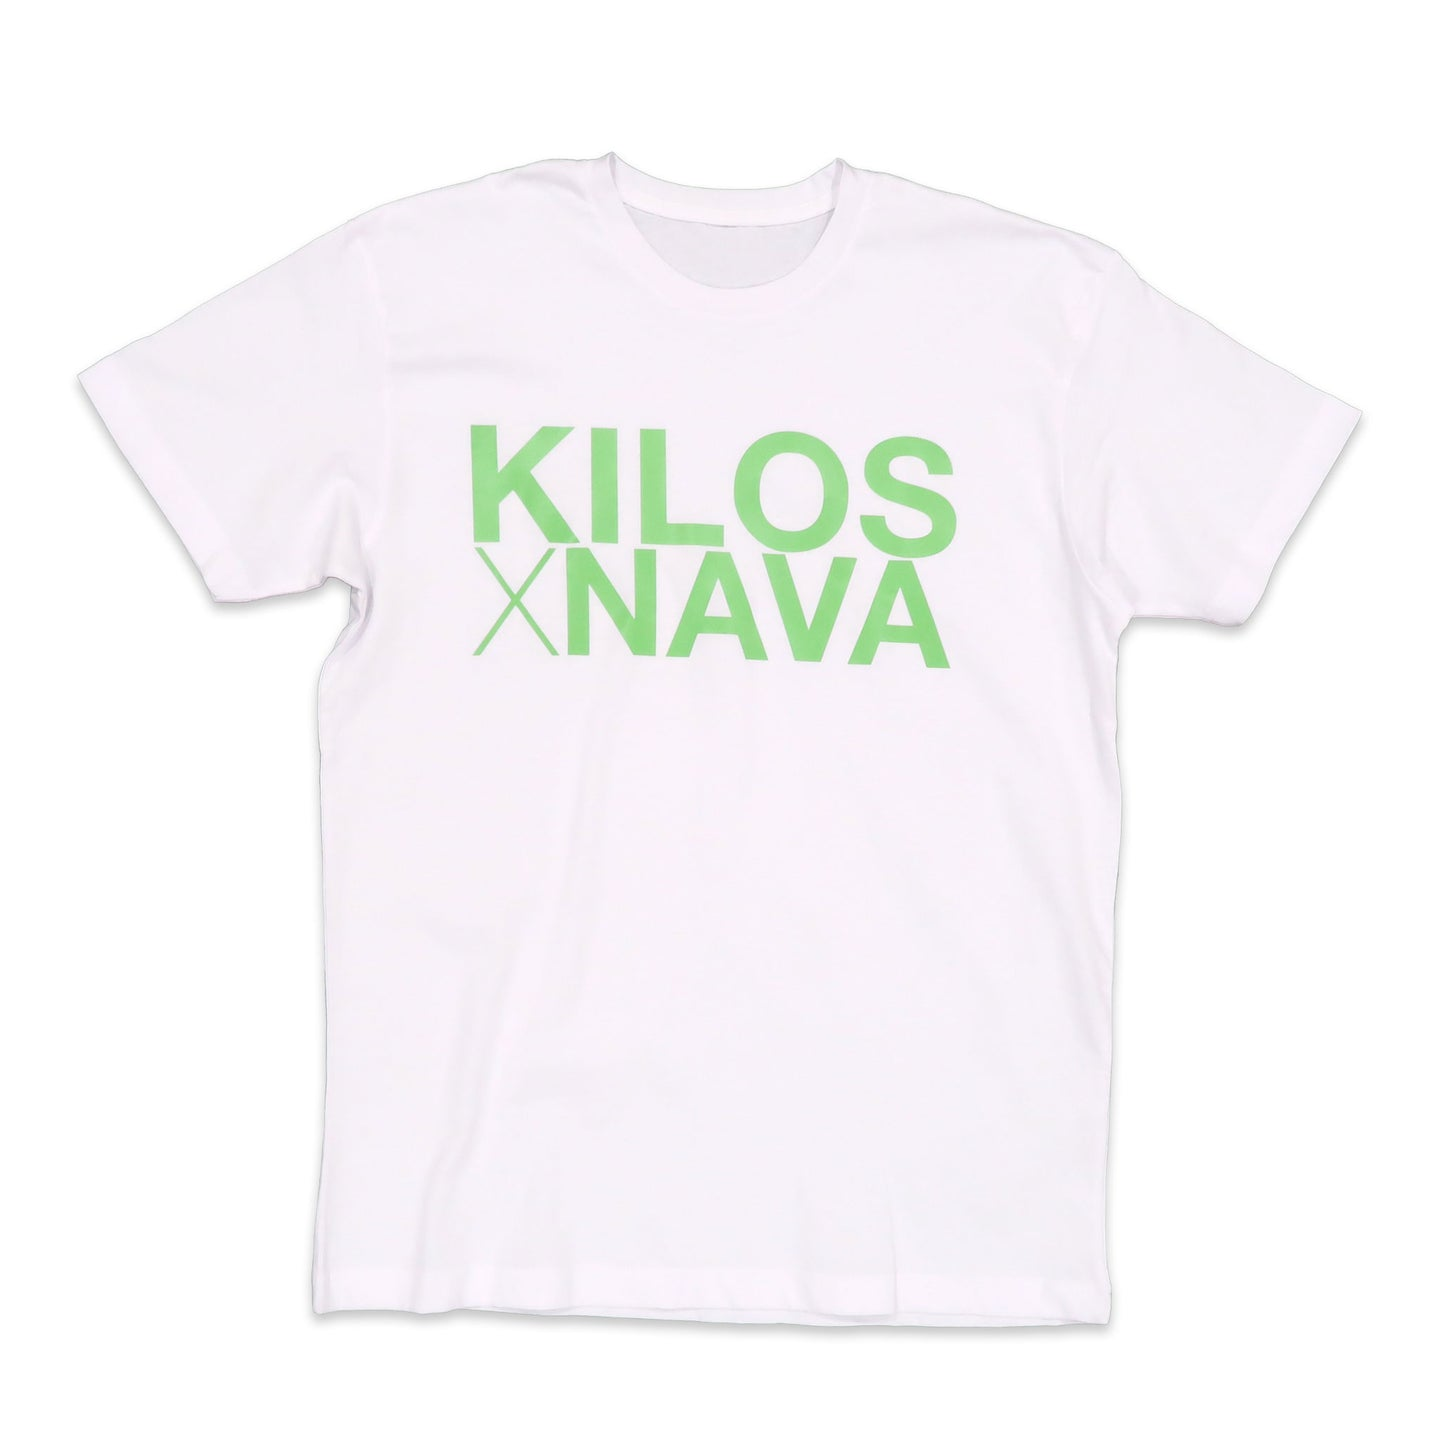 Kilos X Nava Basic Tee in White and Green